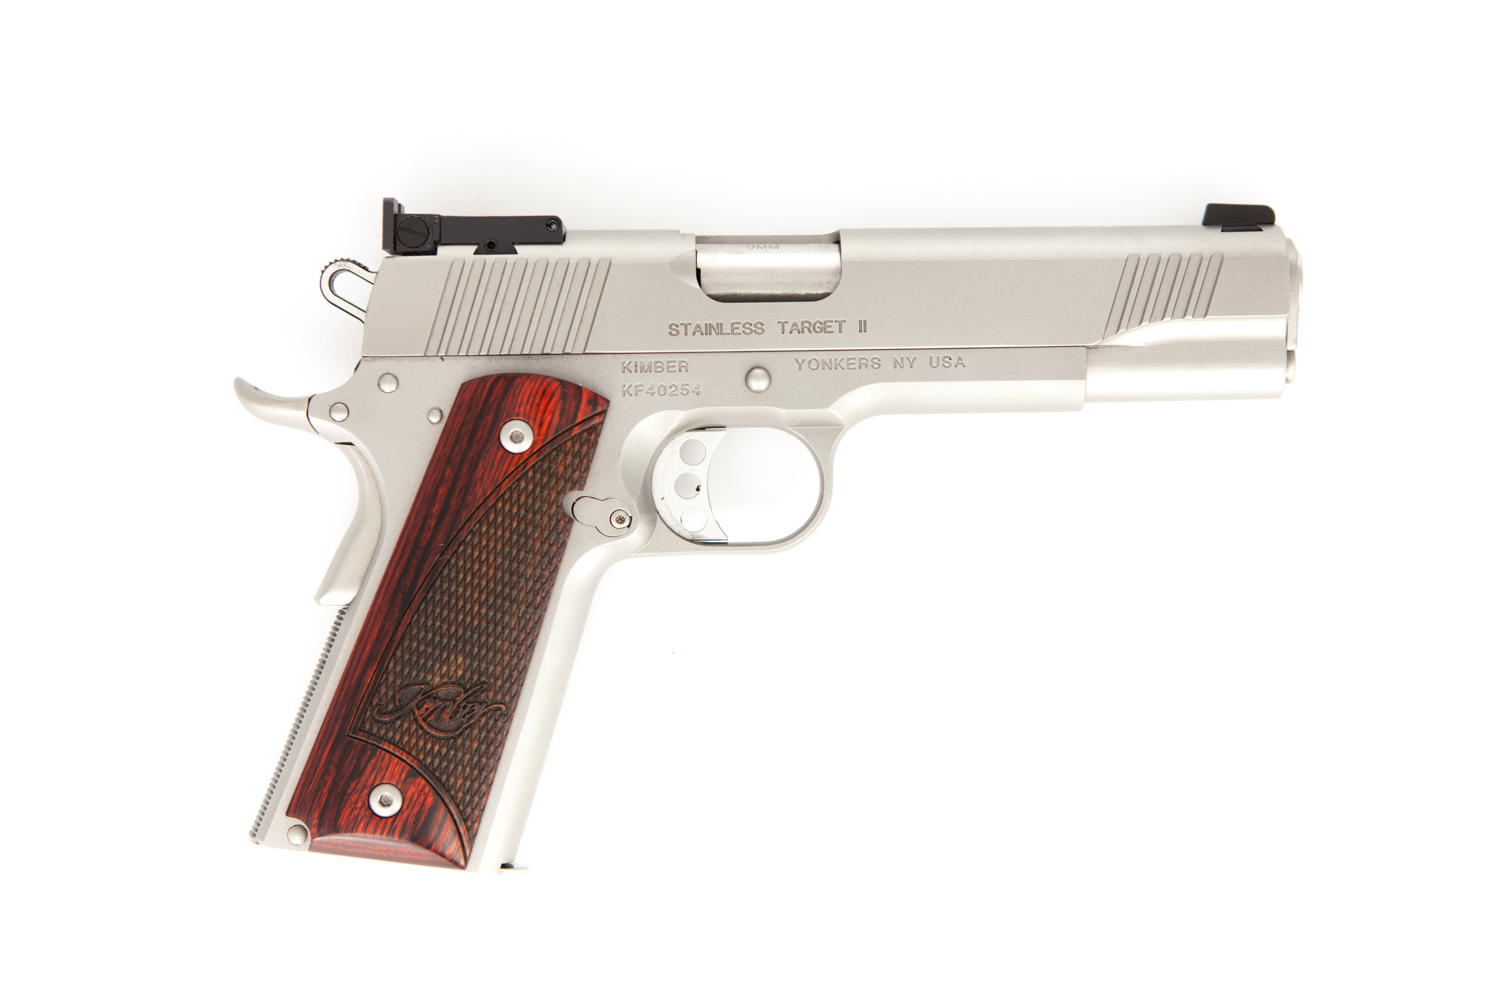 Kimber Stainless Target II 9mm